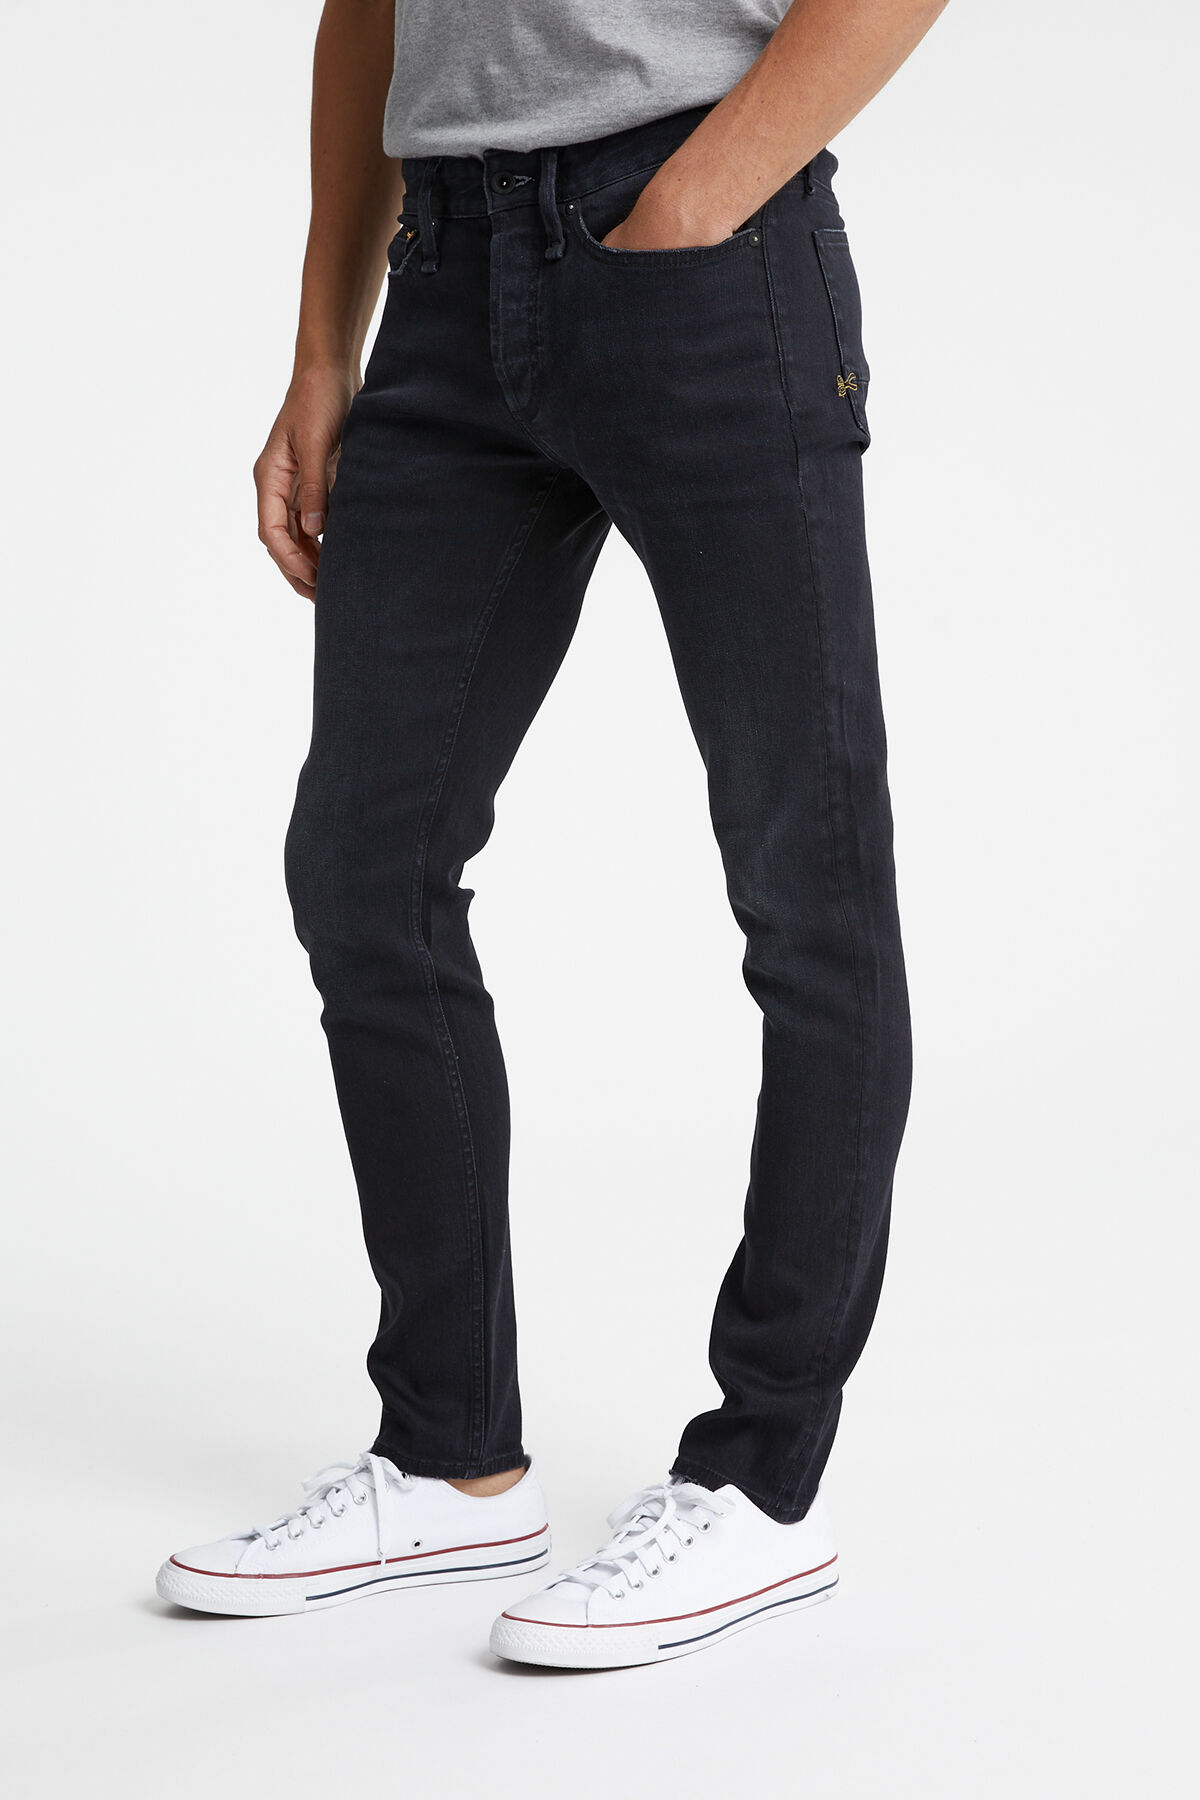 BOLT Black sustainable denim - Skinny Fit